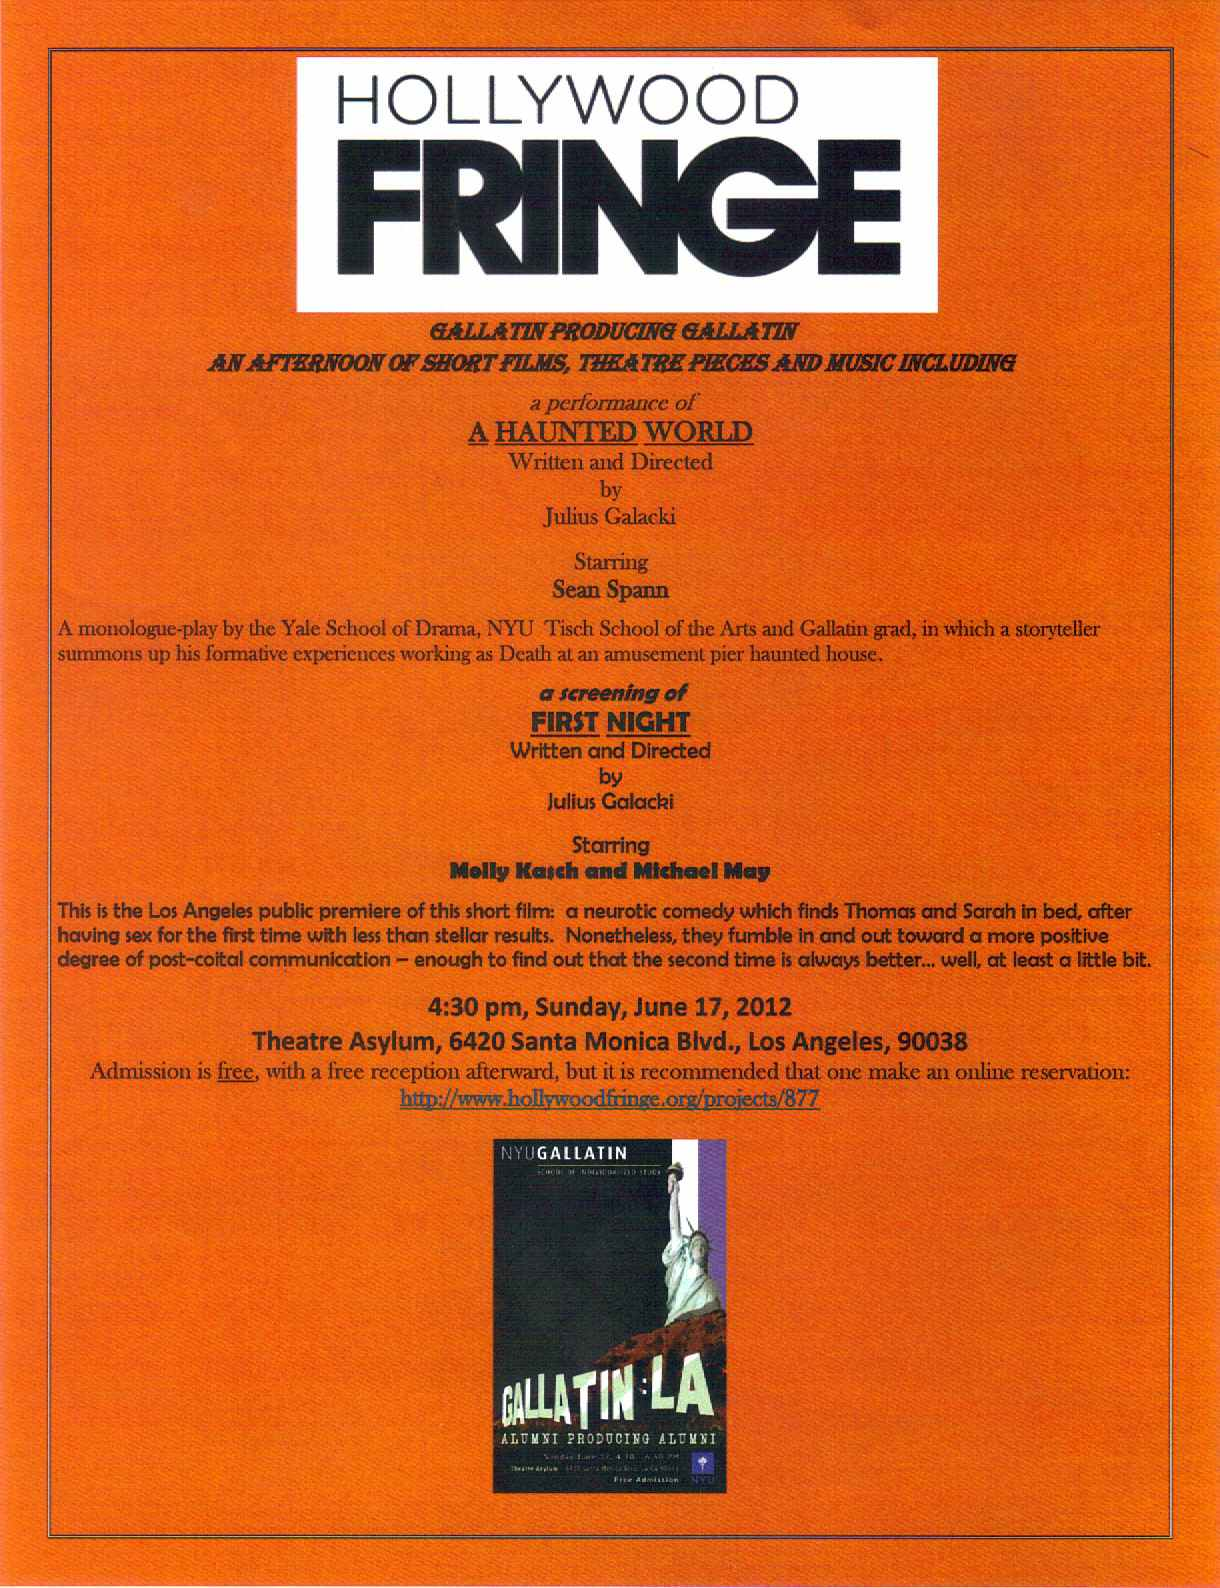 """""""A Haunted World"""" and """"First Night"""" flyer for the Hollywood Fringe Festival, 2012"""